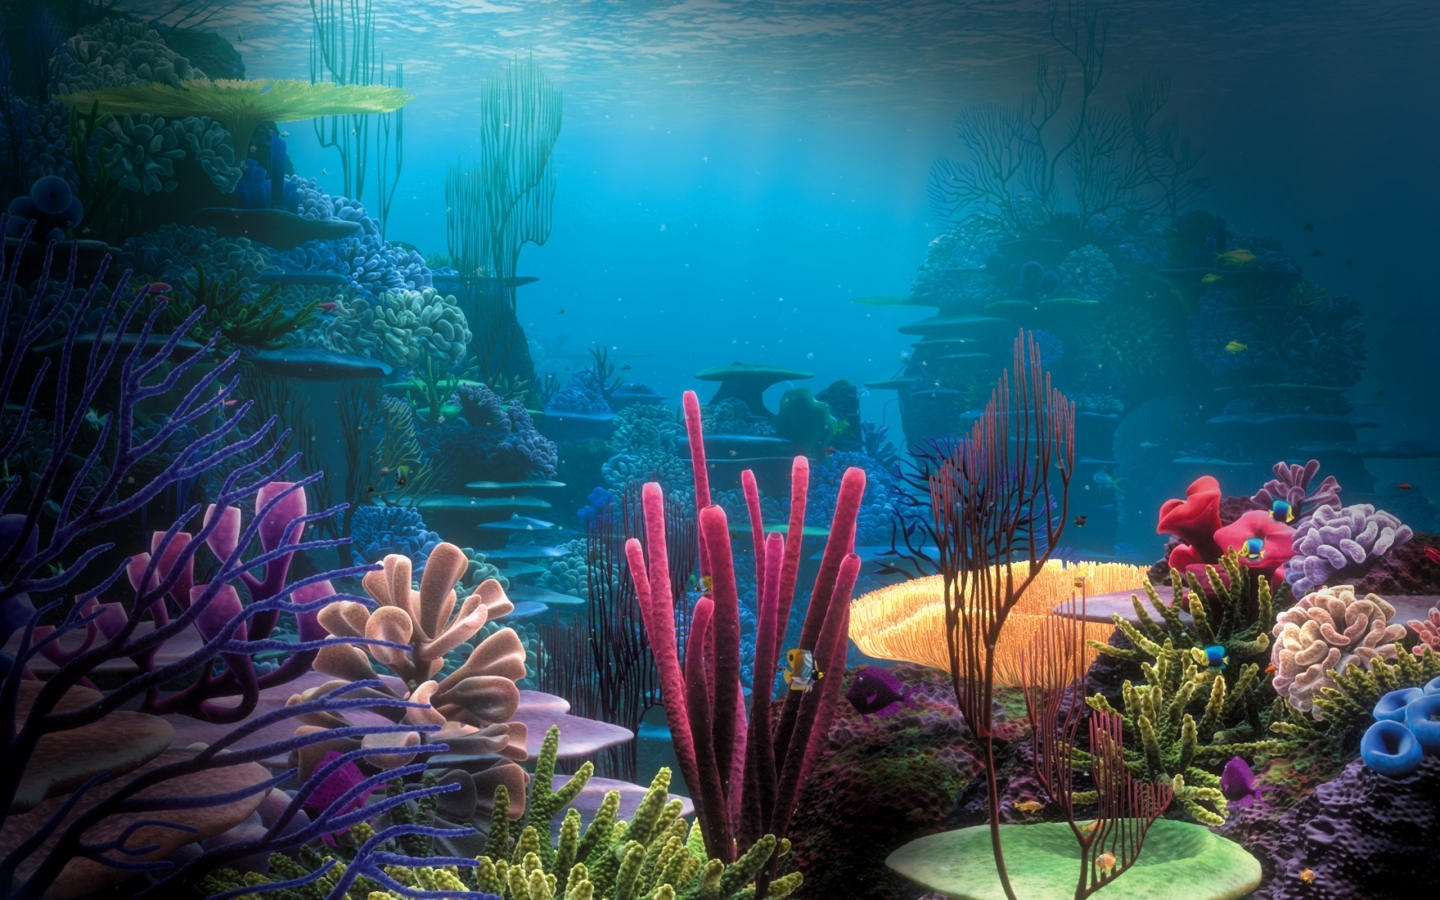 under the sea wallpaper wallpapersdb 1440x900